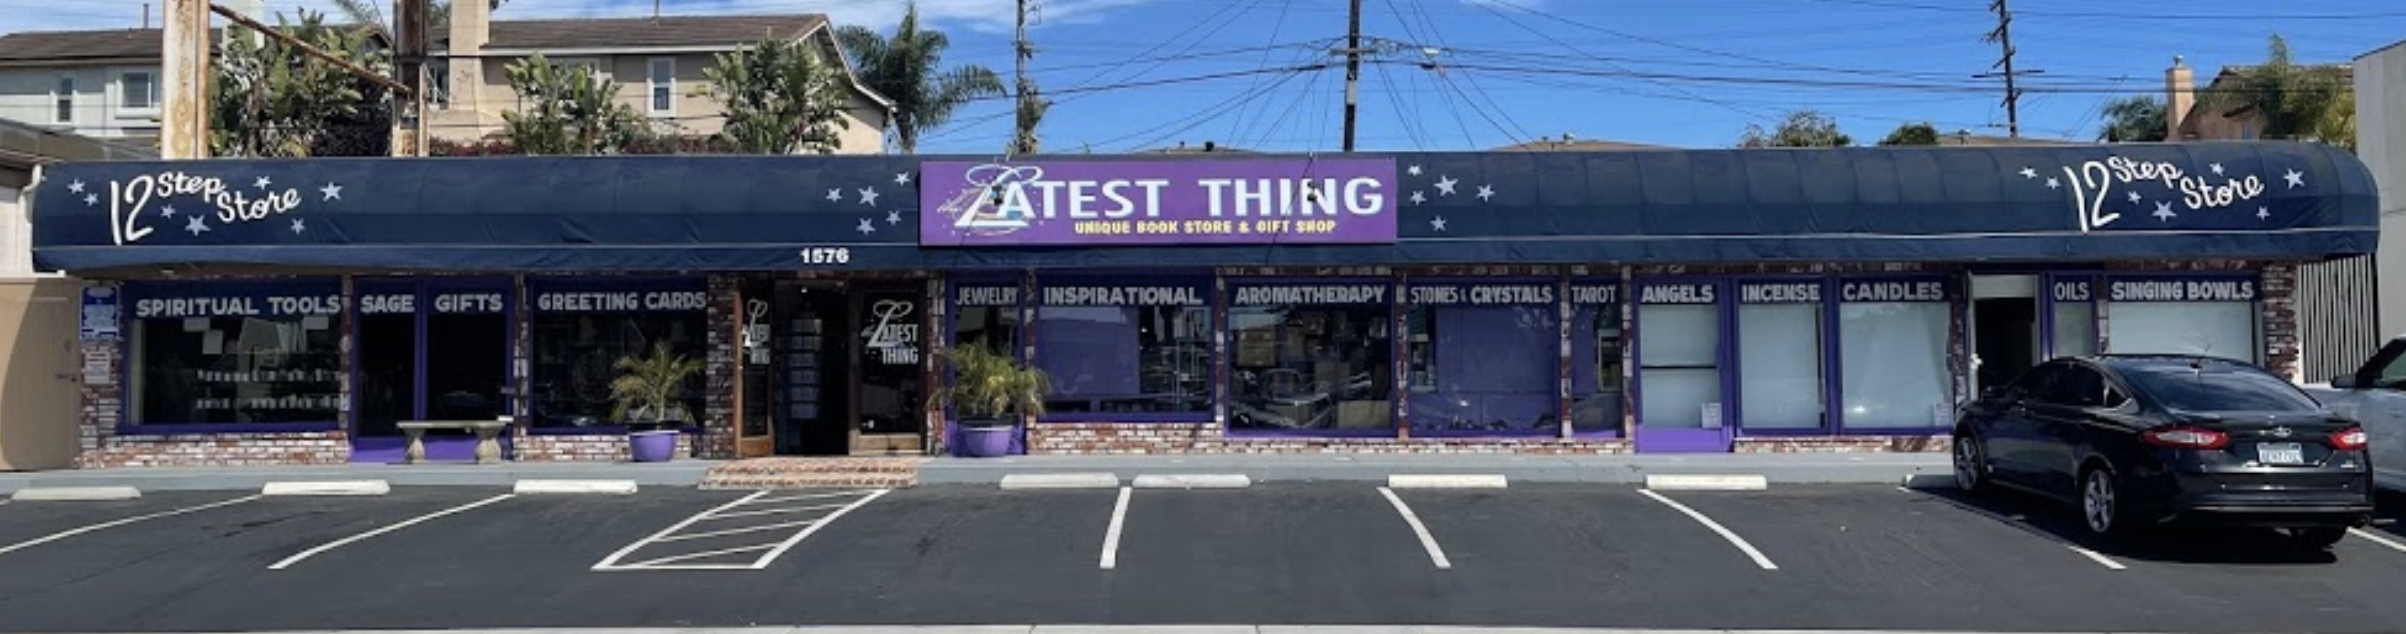 The Latest Thing 12 Step Recovery & Spiritual Gift & Book Shop